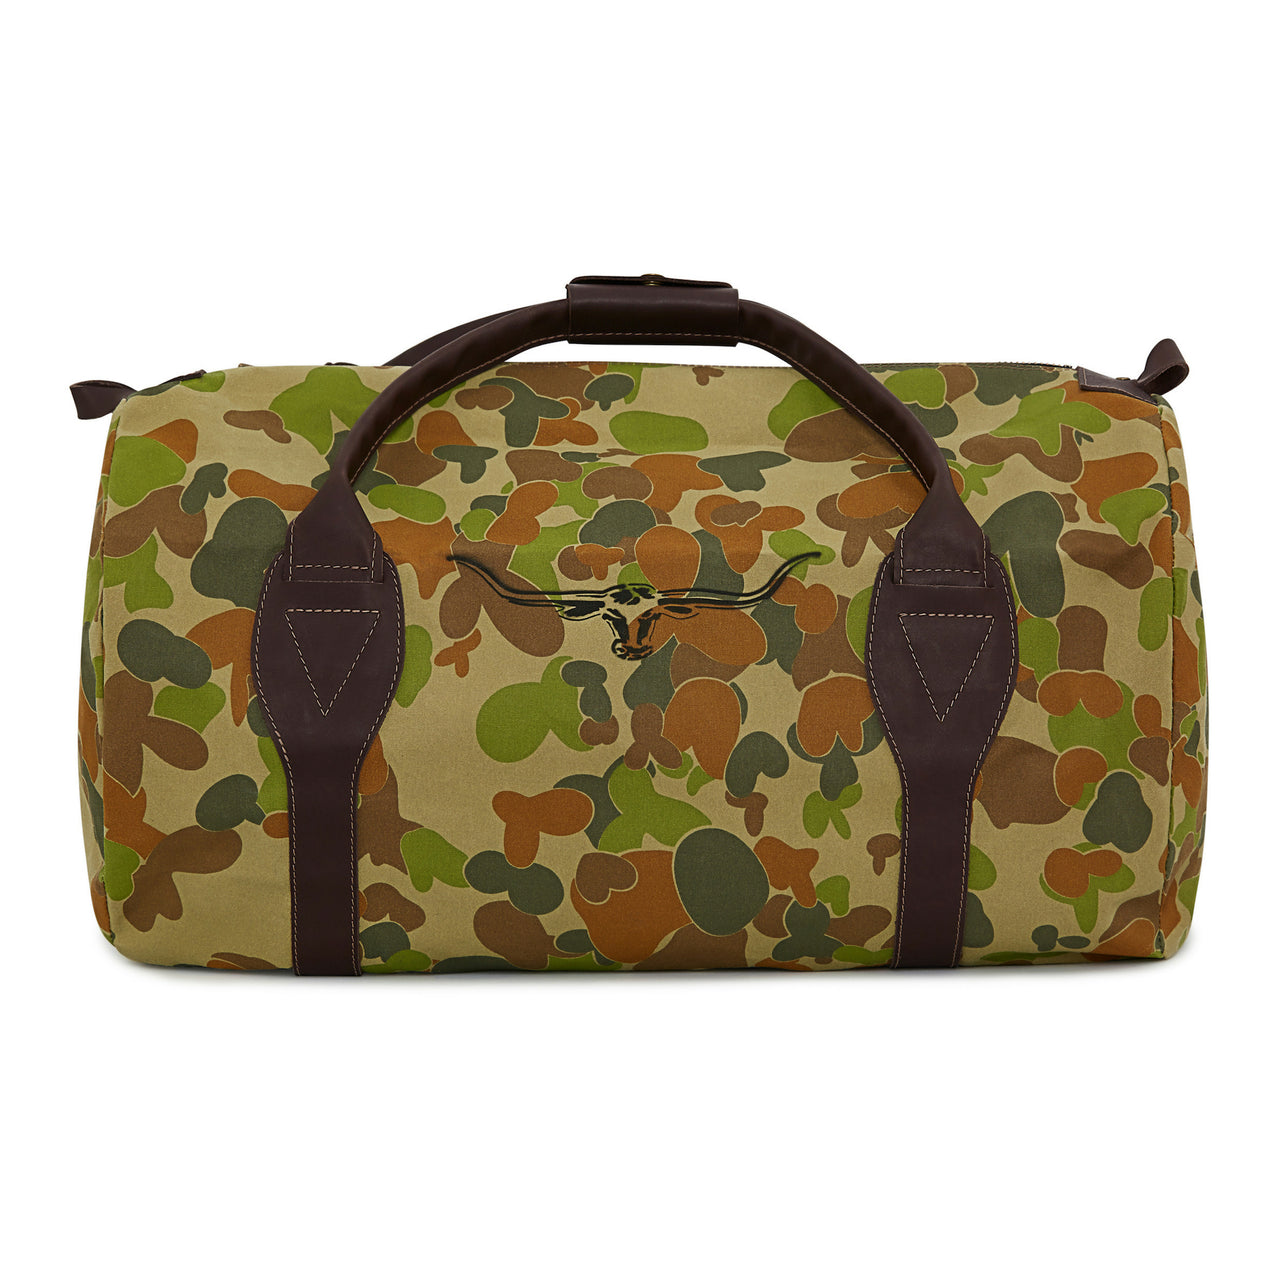 R-M-Williams-Travel-Bag-Camouflage